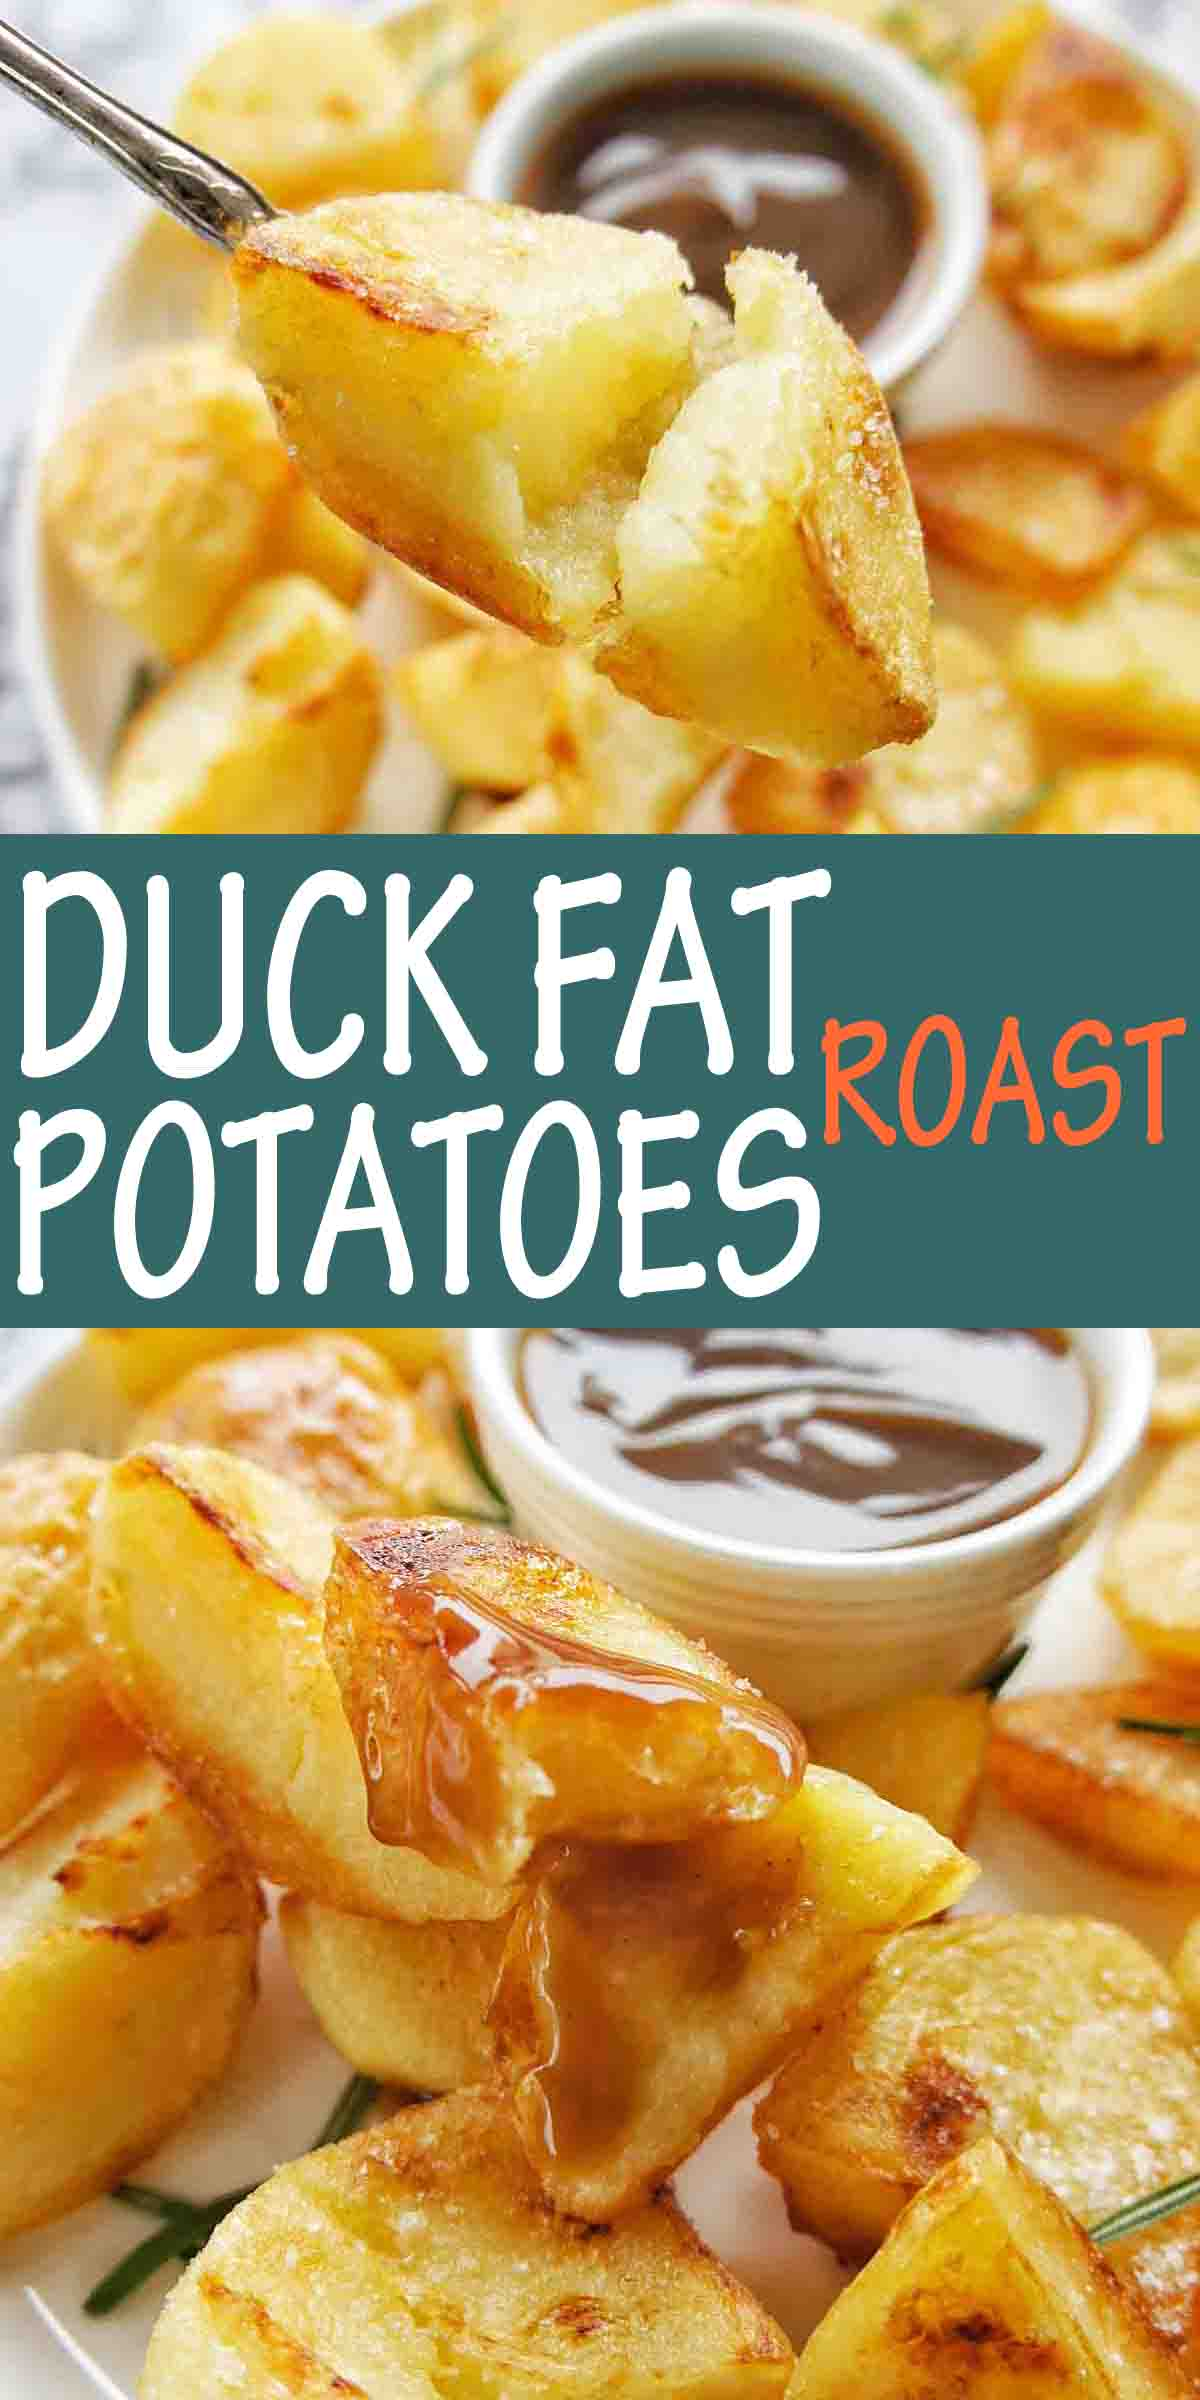 Duck Fat Roast potatoes with text labels